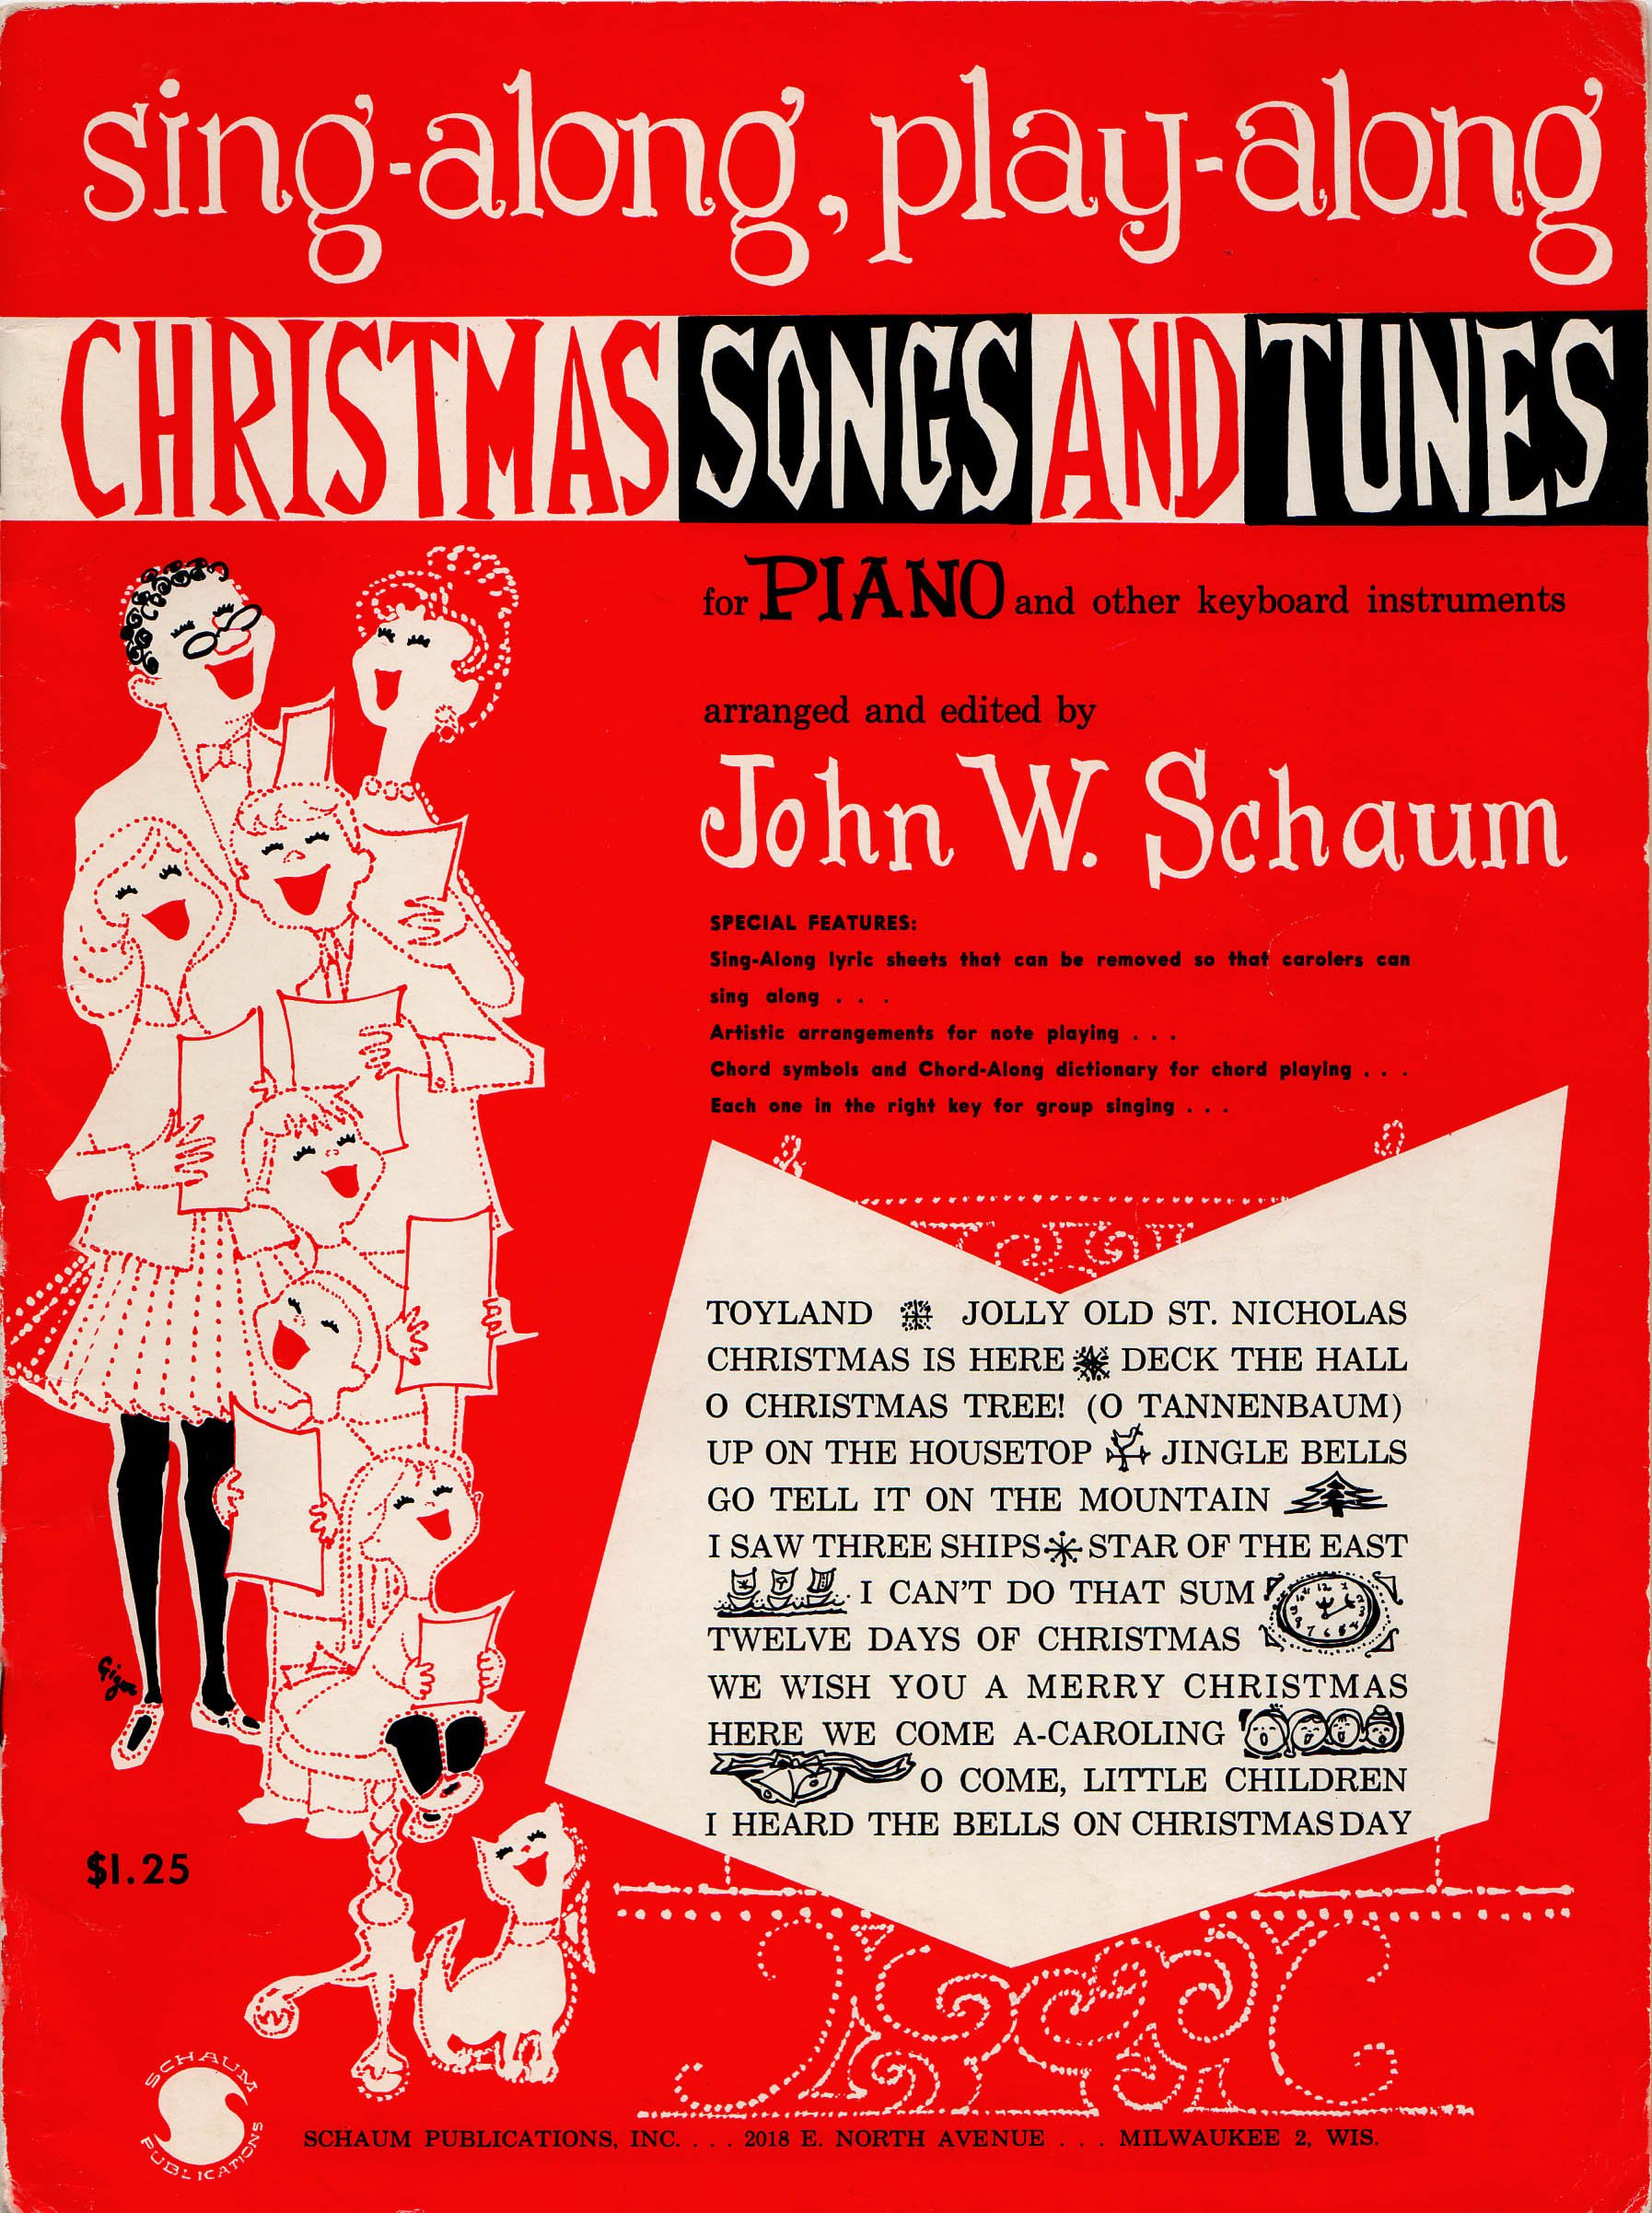 SING-ALONG, PLAY-ALONG CHRISTMAS SONGS AND TUNES FOR PIANO OR ORGAN ...